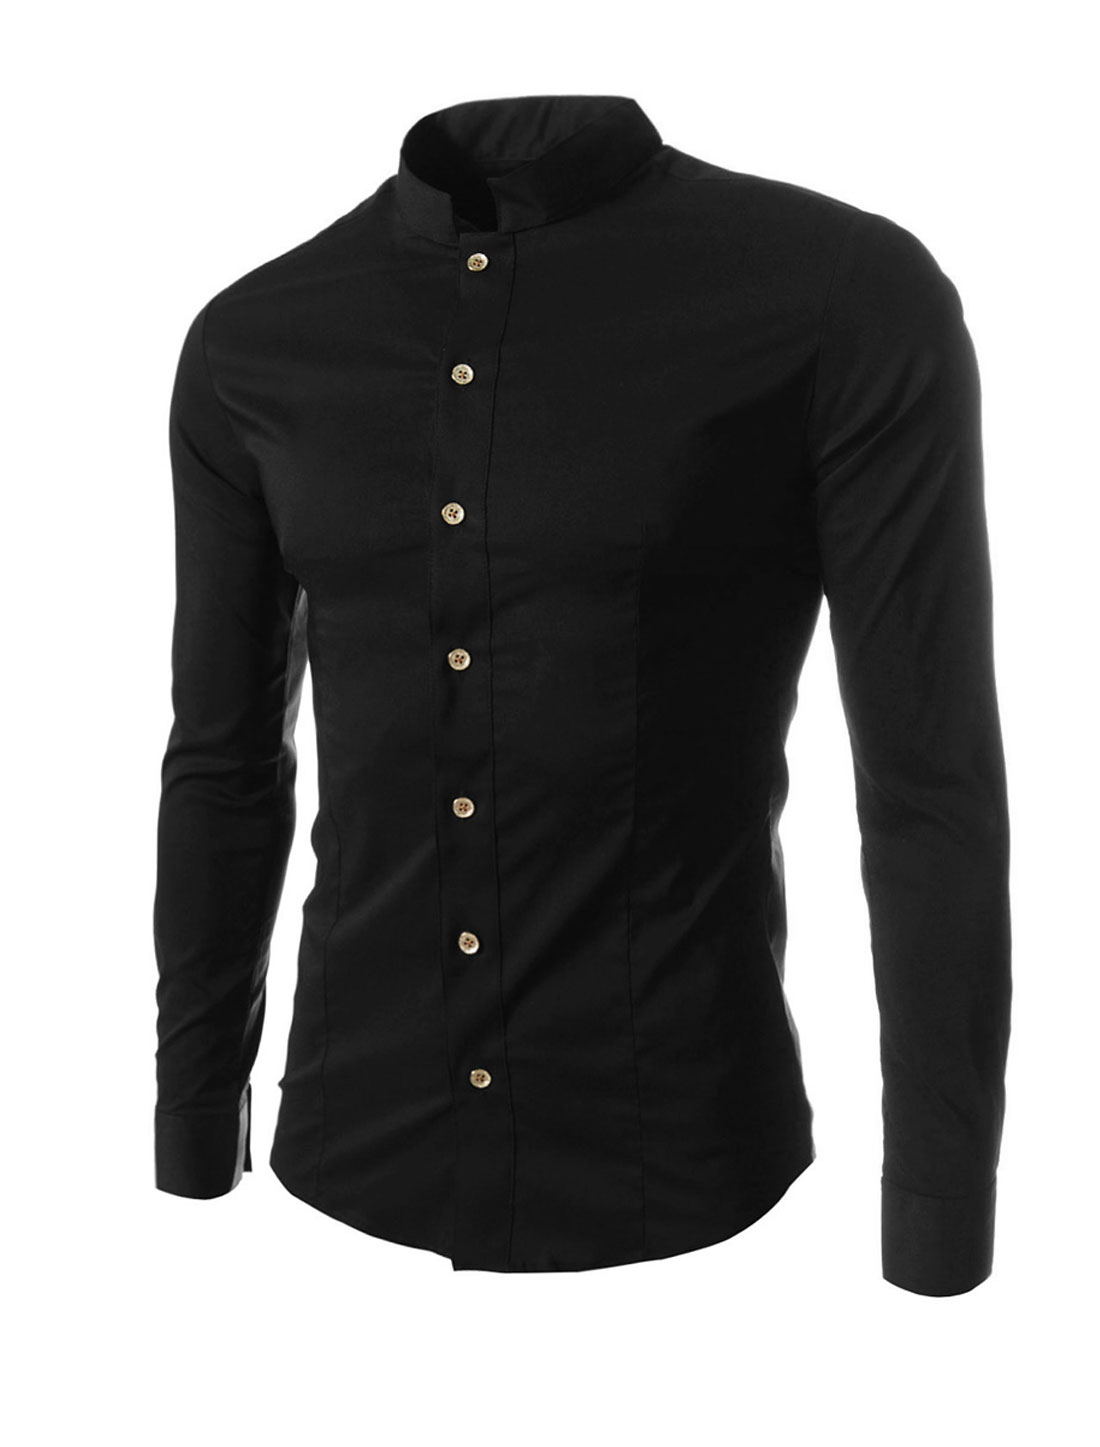 Cozy Fit Stylish Button Down Stand Collar Black Shirt for Man M